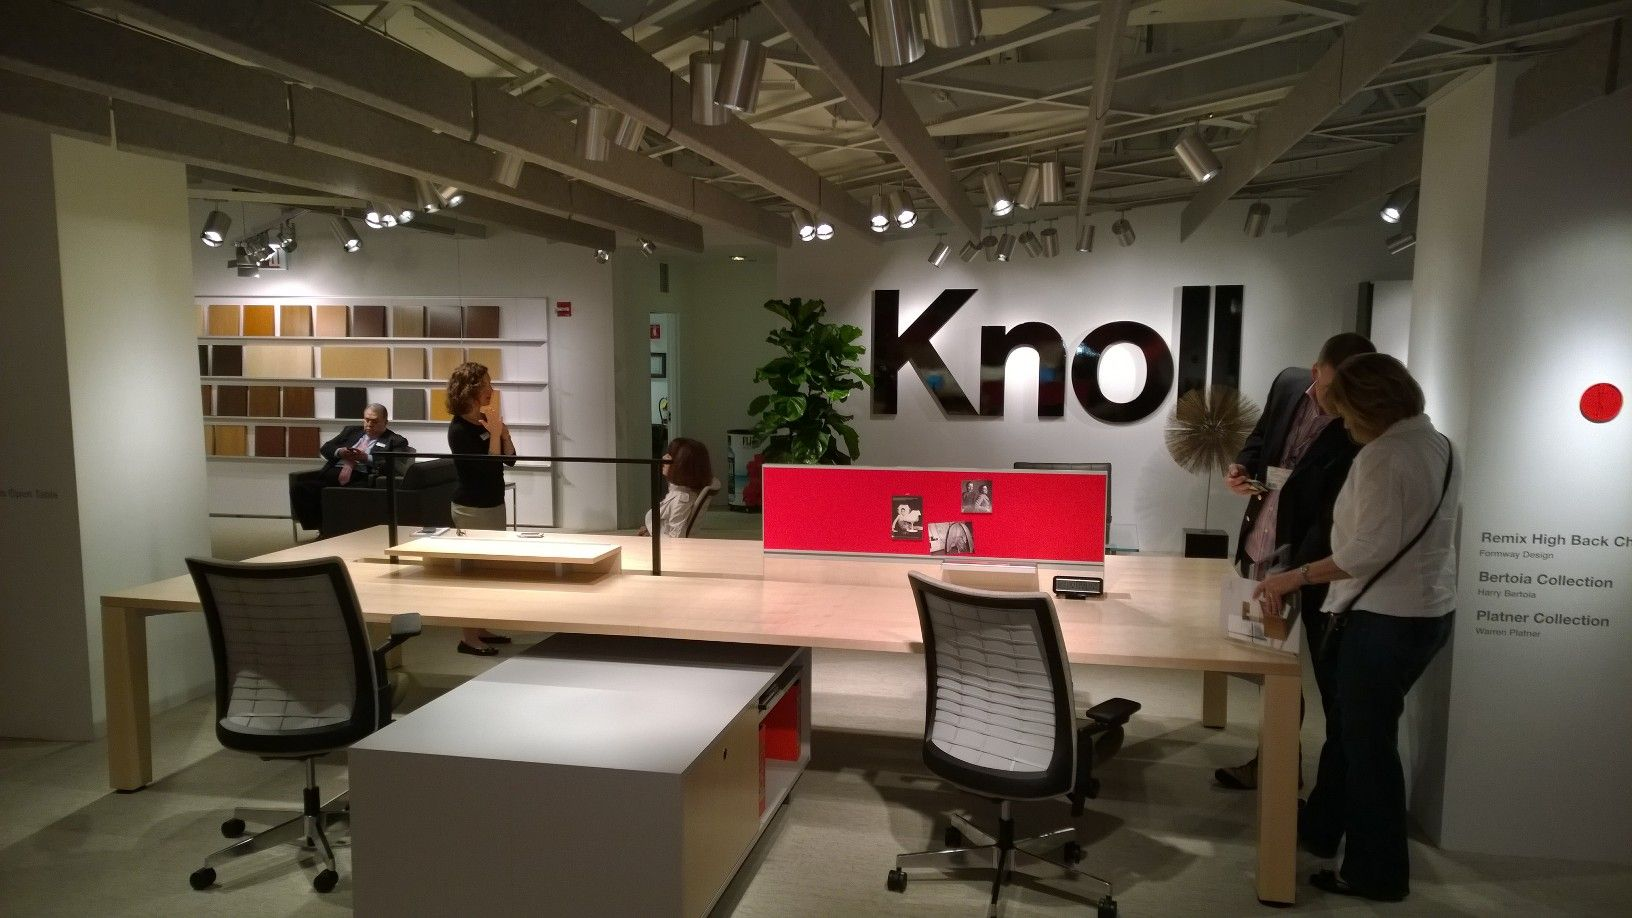 Apex Facility Resources Visiting The Knoll Design Office Furniture Showroom At NeoCon14